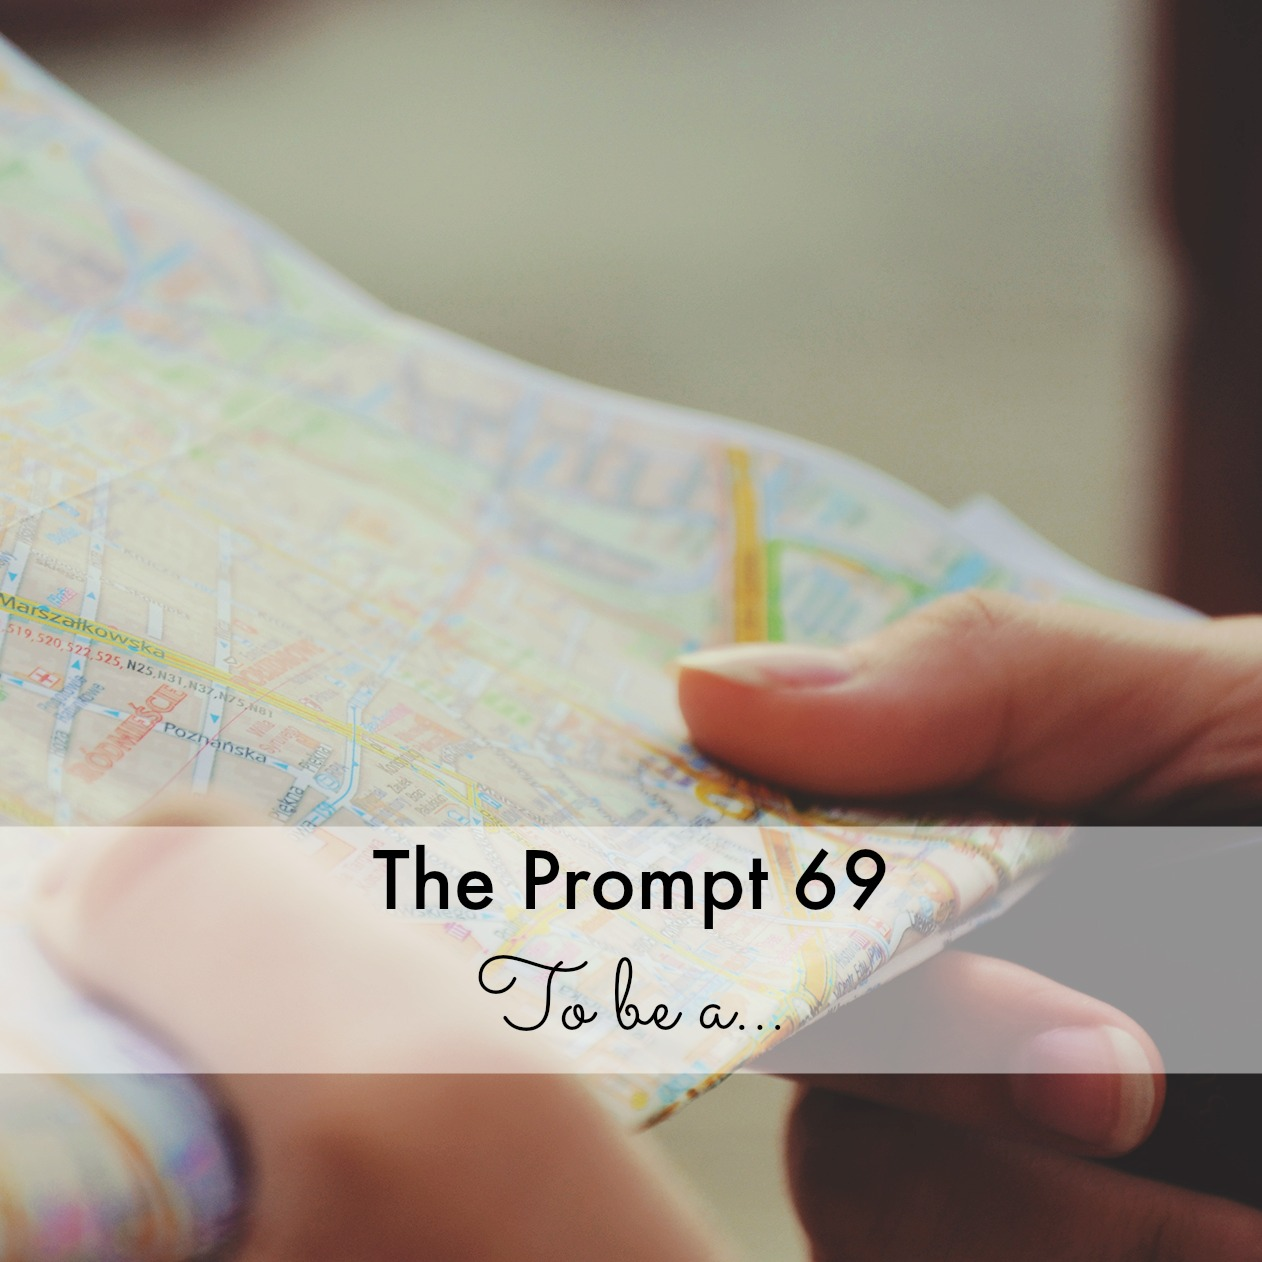 The Prompt 69: To be a...